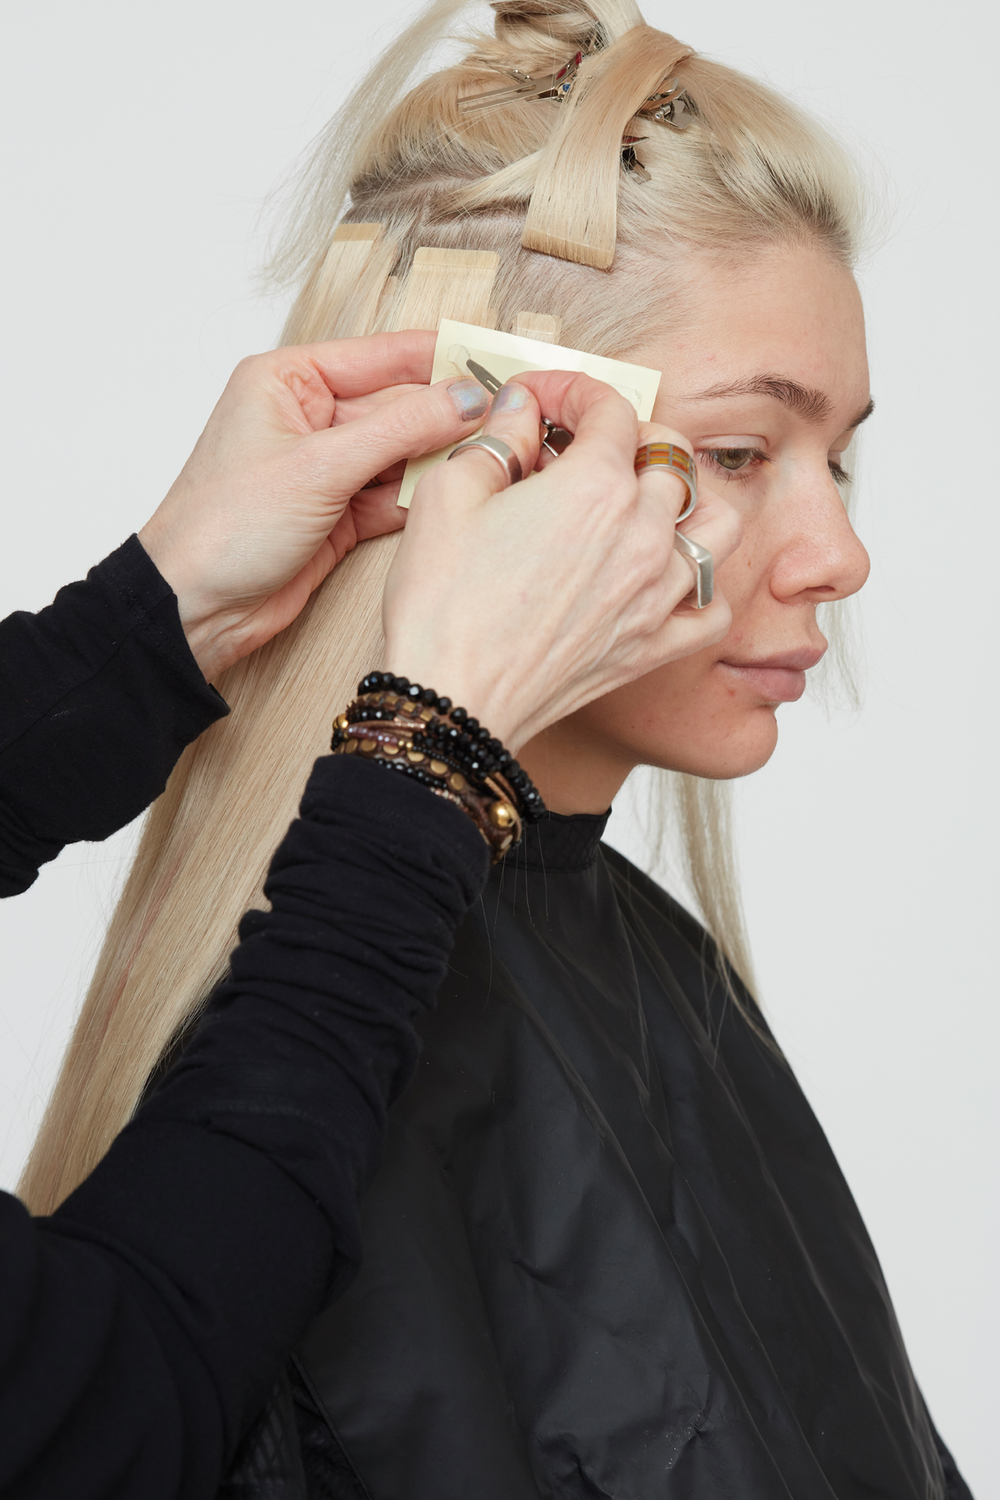 STEP 8. Use smaller extensions in the temple area. Do not go too close to the hairline to allow client to have different style options. In low density areas, GL Tapes may be applied singly with a safety band on the underside of the attachment.